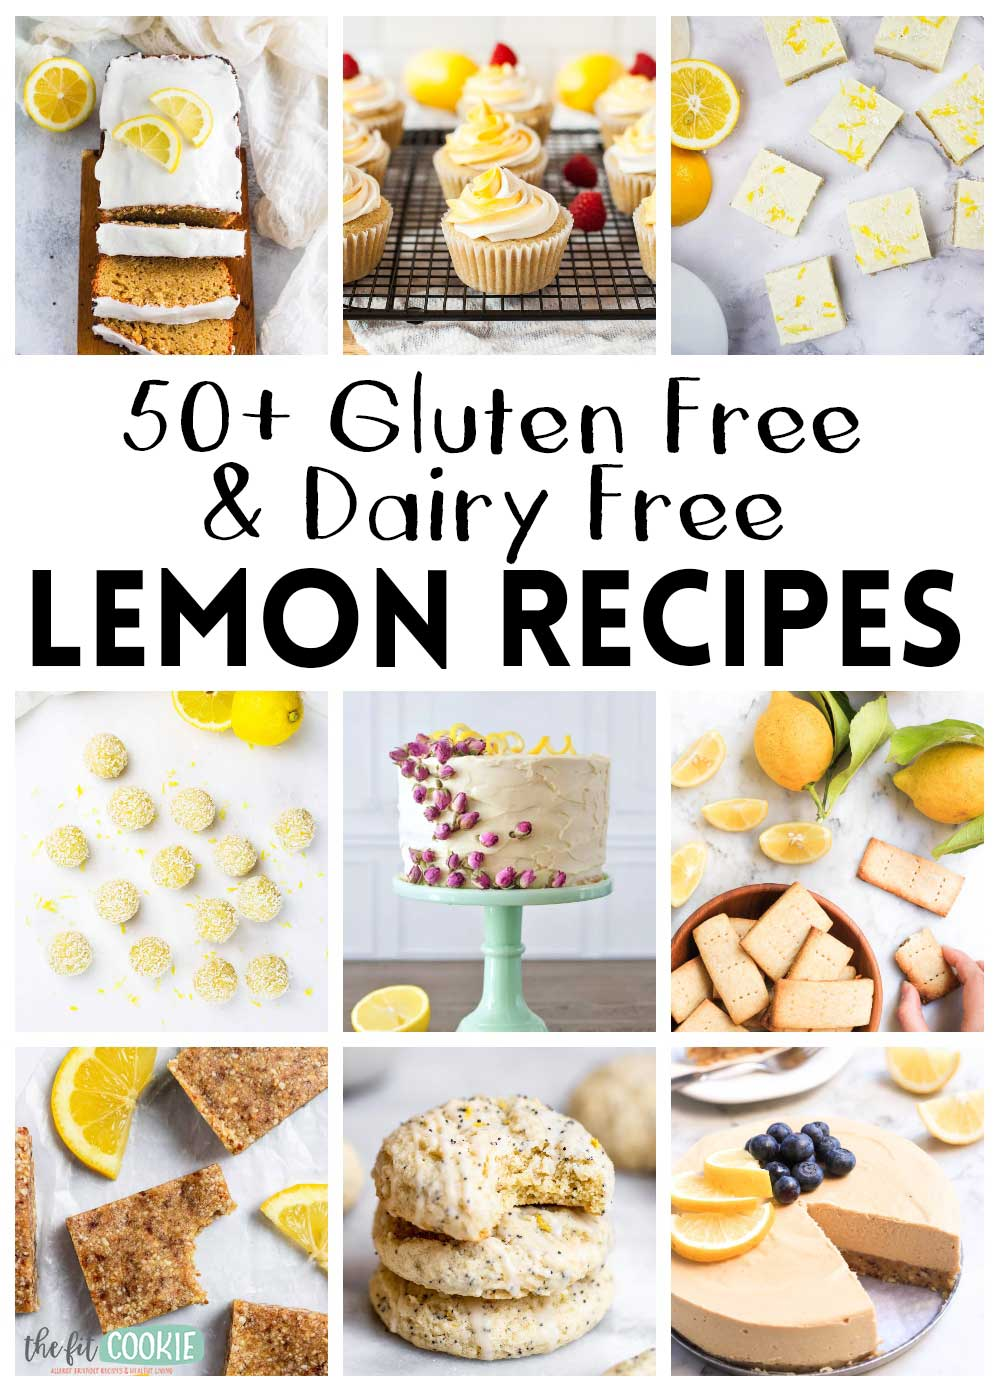 photo collage of gluten free dairy free lemon recipes